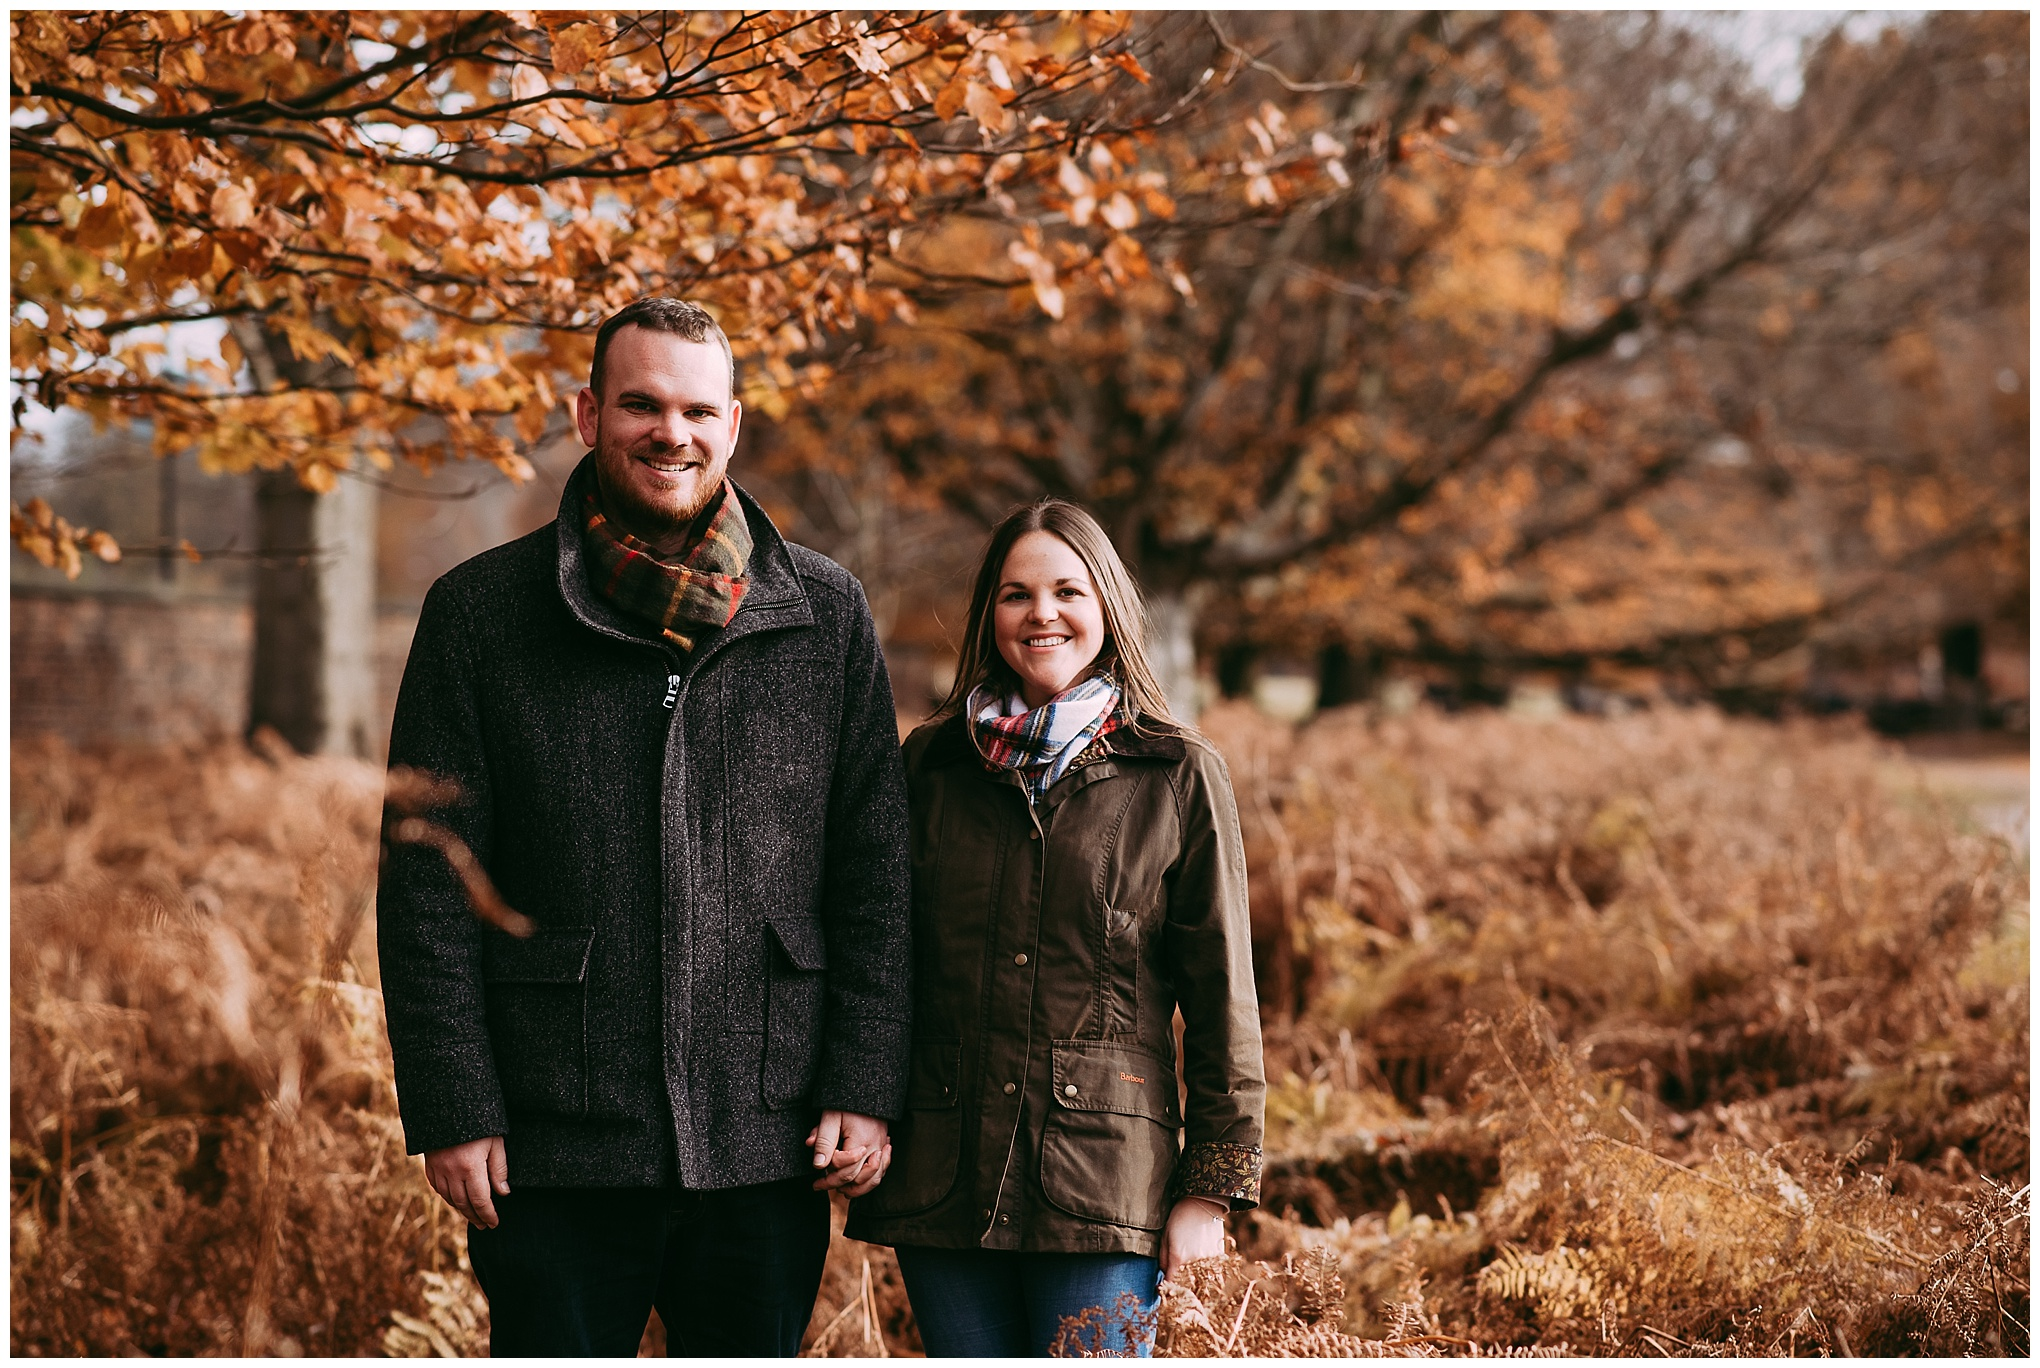 North west Engagement shoot. Couple walking in woods holding hands